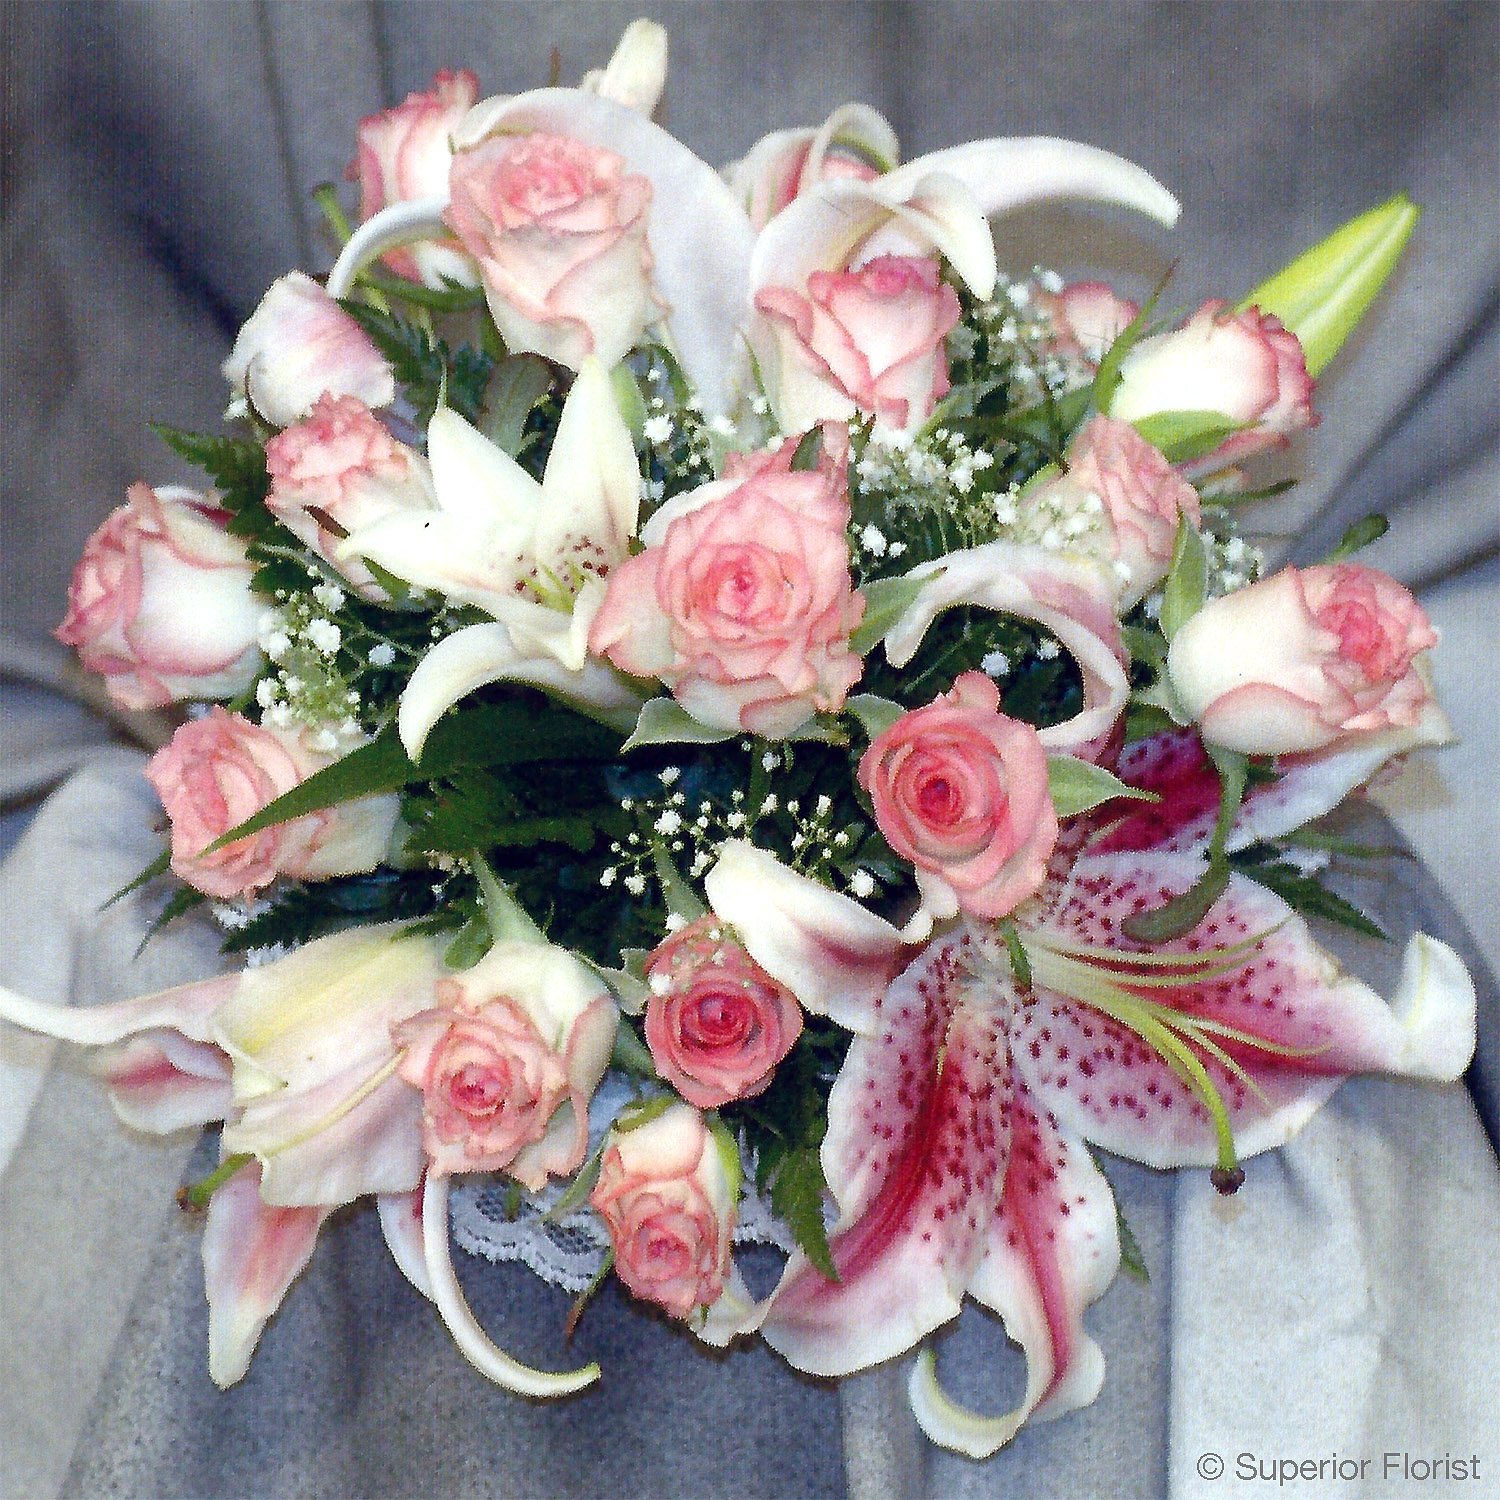 Superior Florist – Weddings – Personal Flowers: Hand tied bouquet of stargazer Lilies and two-toned roses of white and pink.